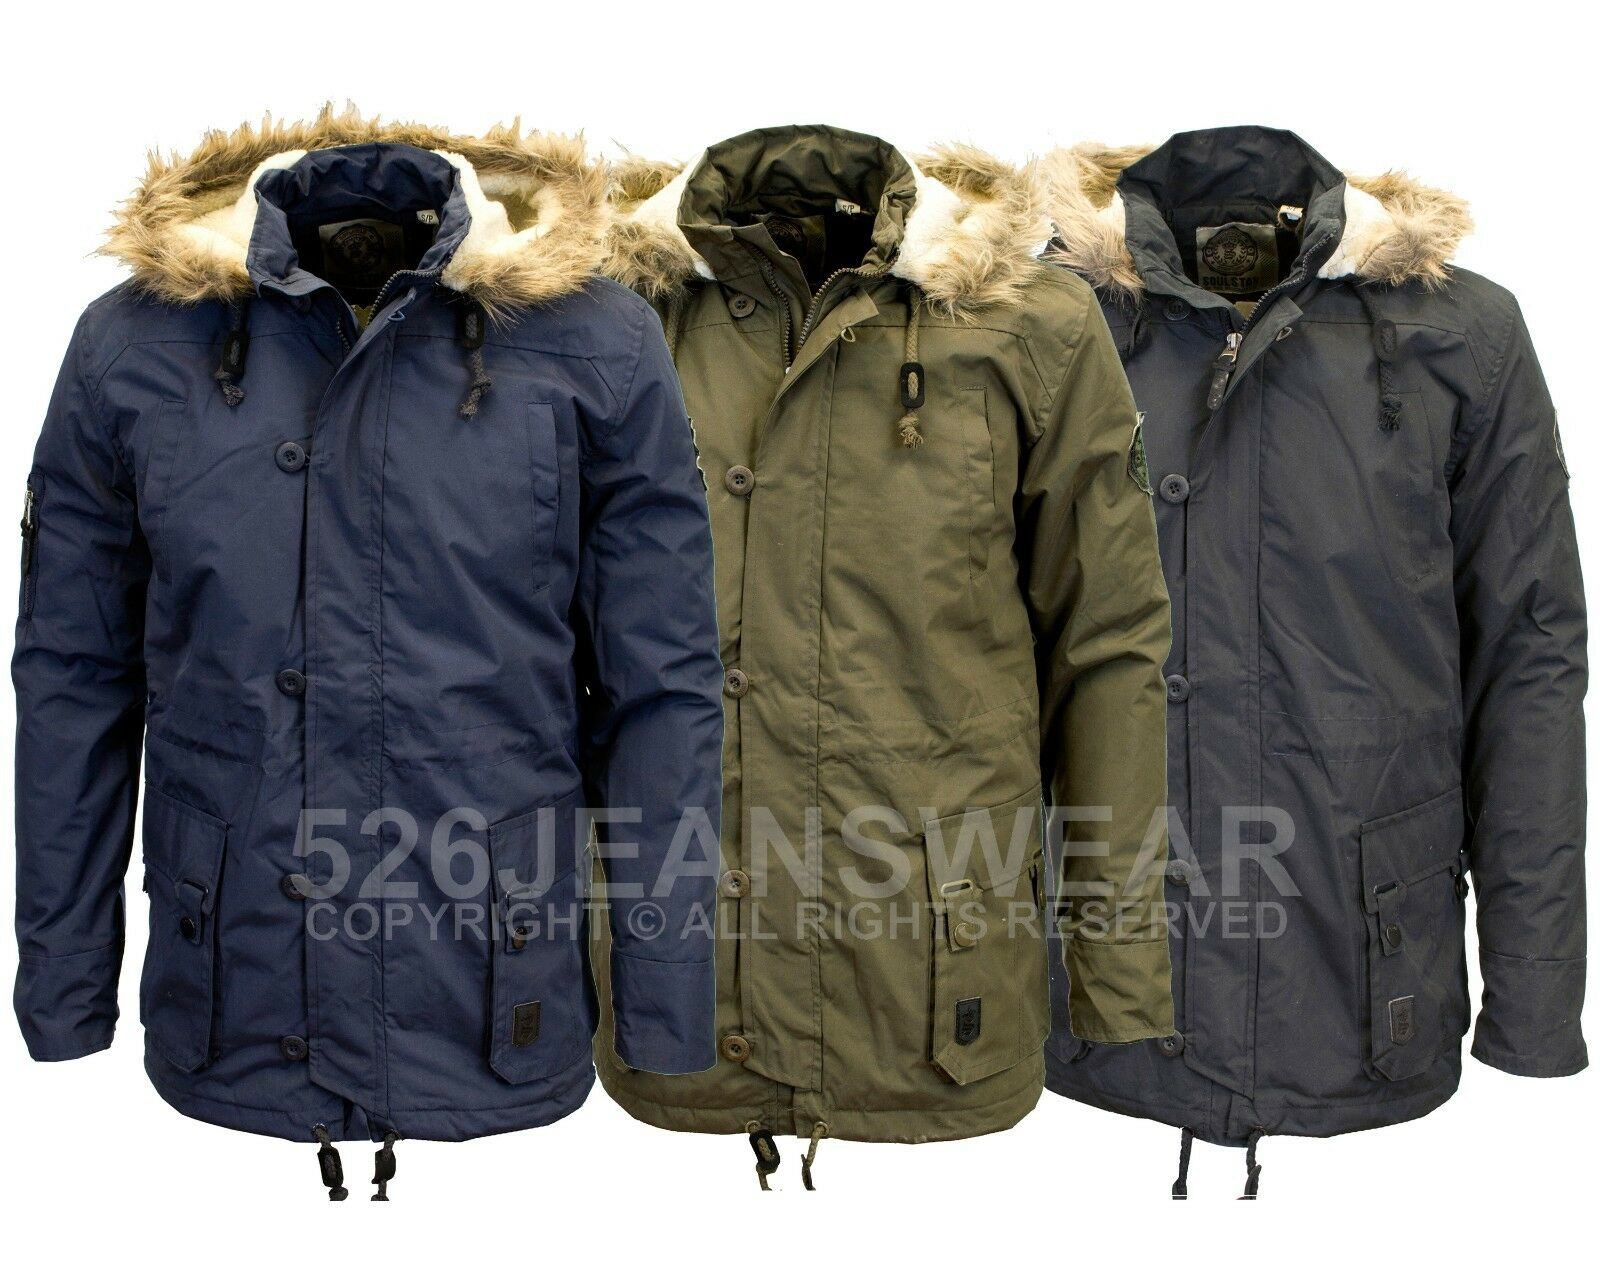 Soulstar Mens Designer Branded Winter Warm Hooded Parka Coat, BNWT